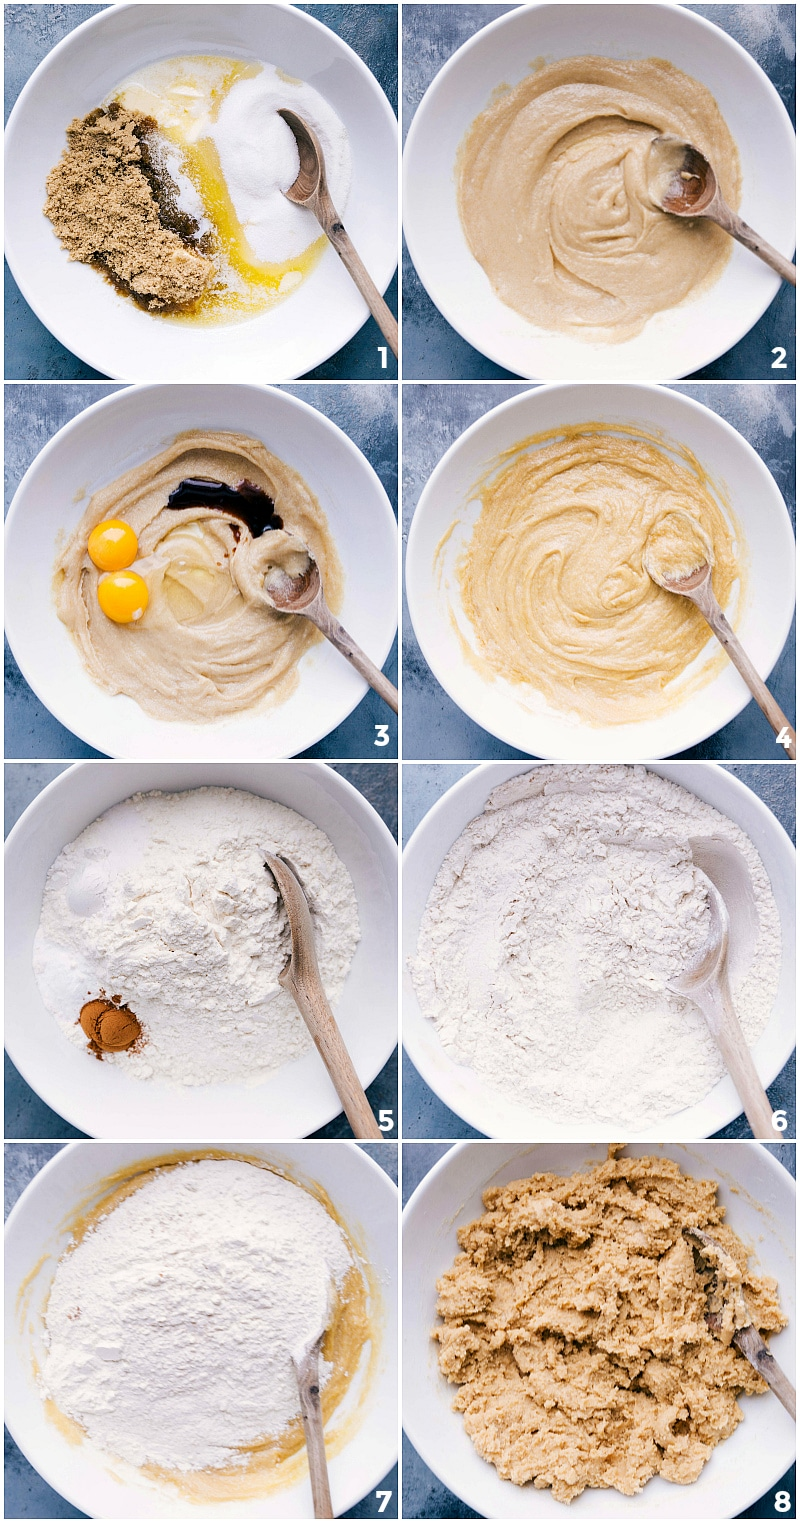 Process shots-- images of the dough being made, showing all the ingredients and them being mixed together.